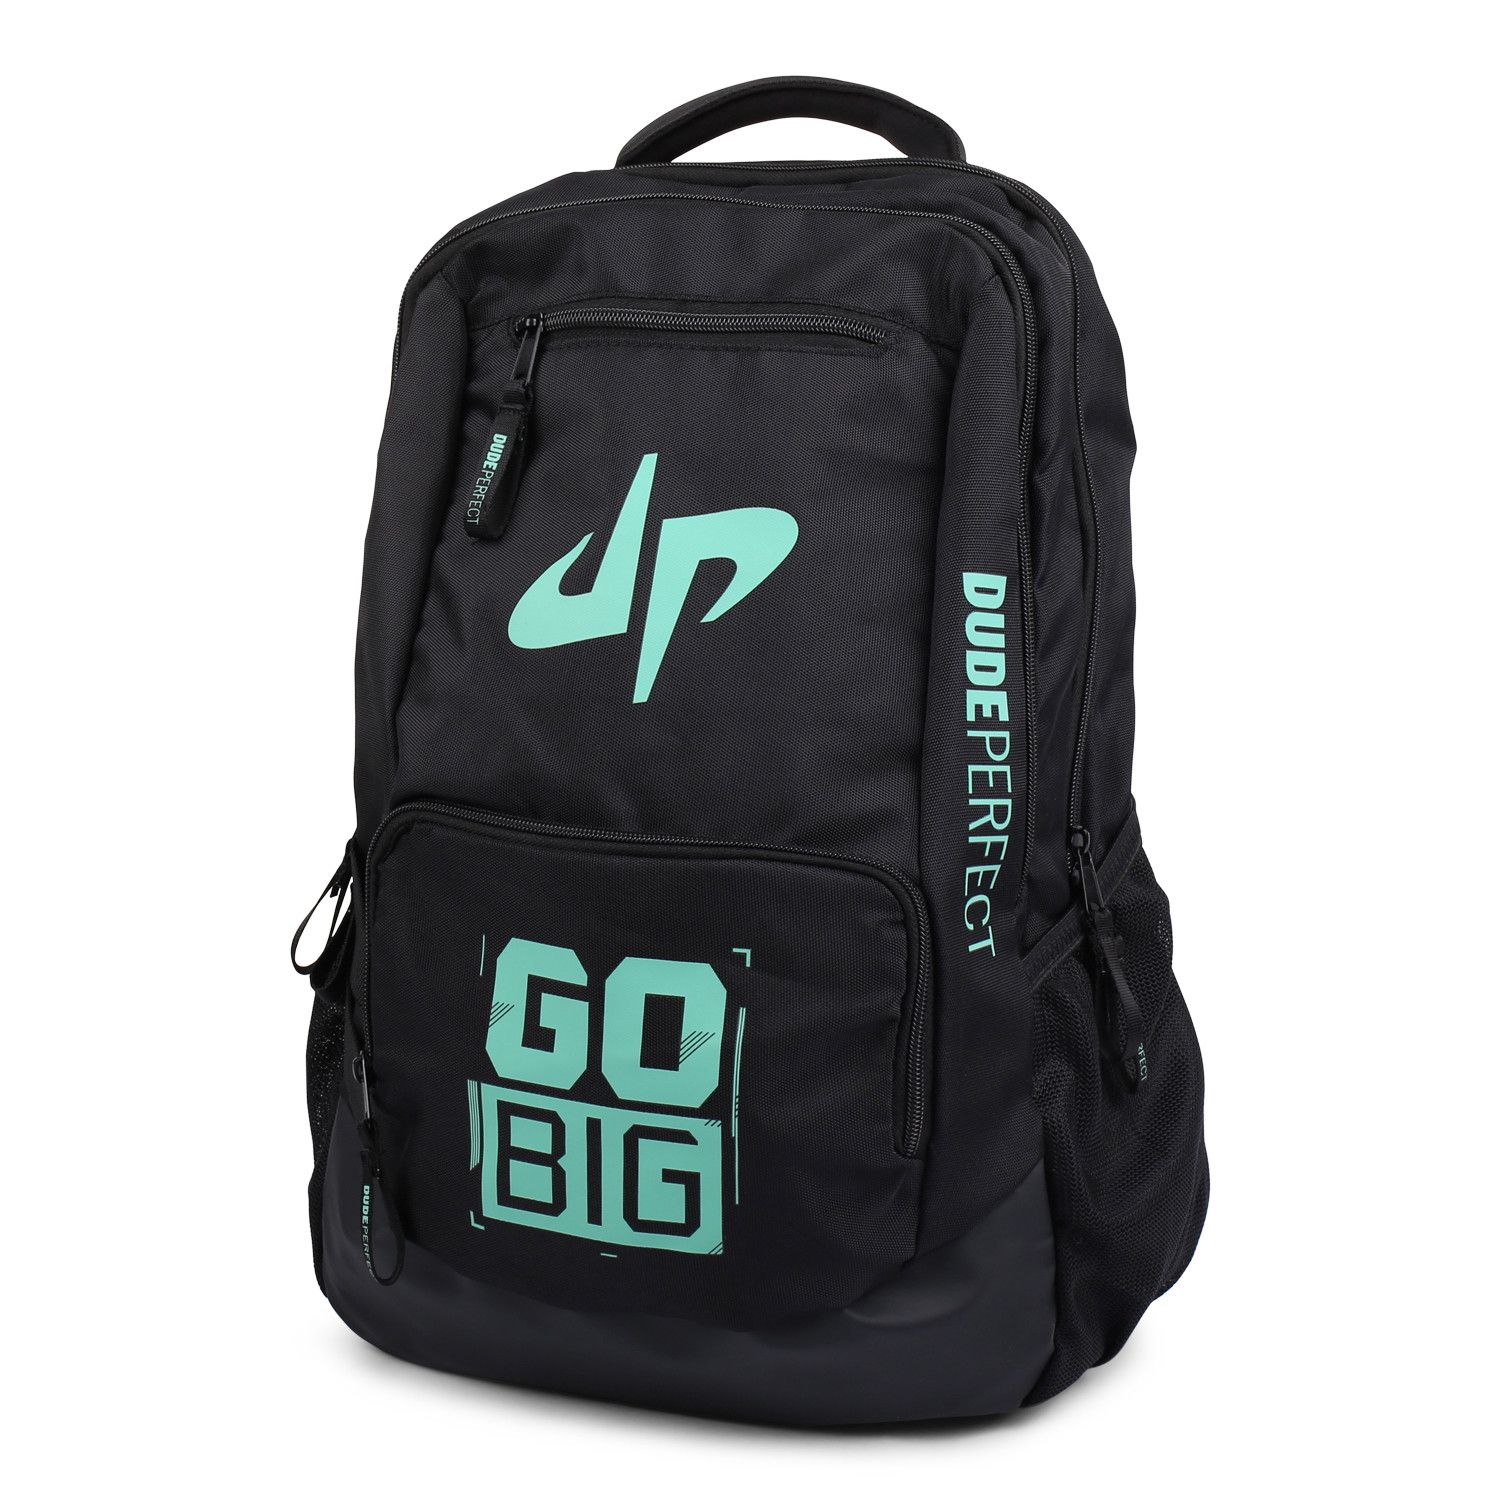 7e760102b939 Our first backpack is the ultimate bag for back to school. Constructed with  4 compartments, including a soft-lined laptop sleeve and media pocket, ...